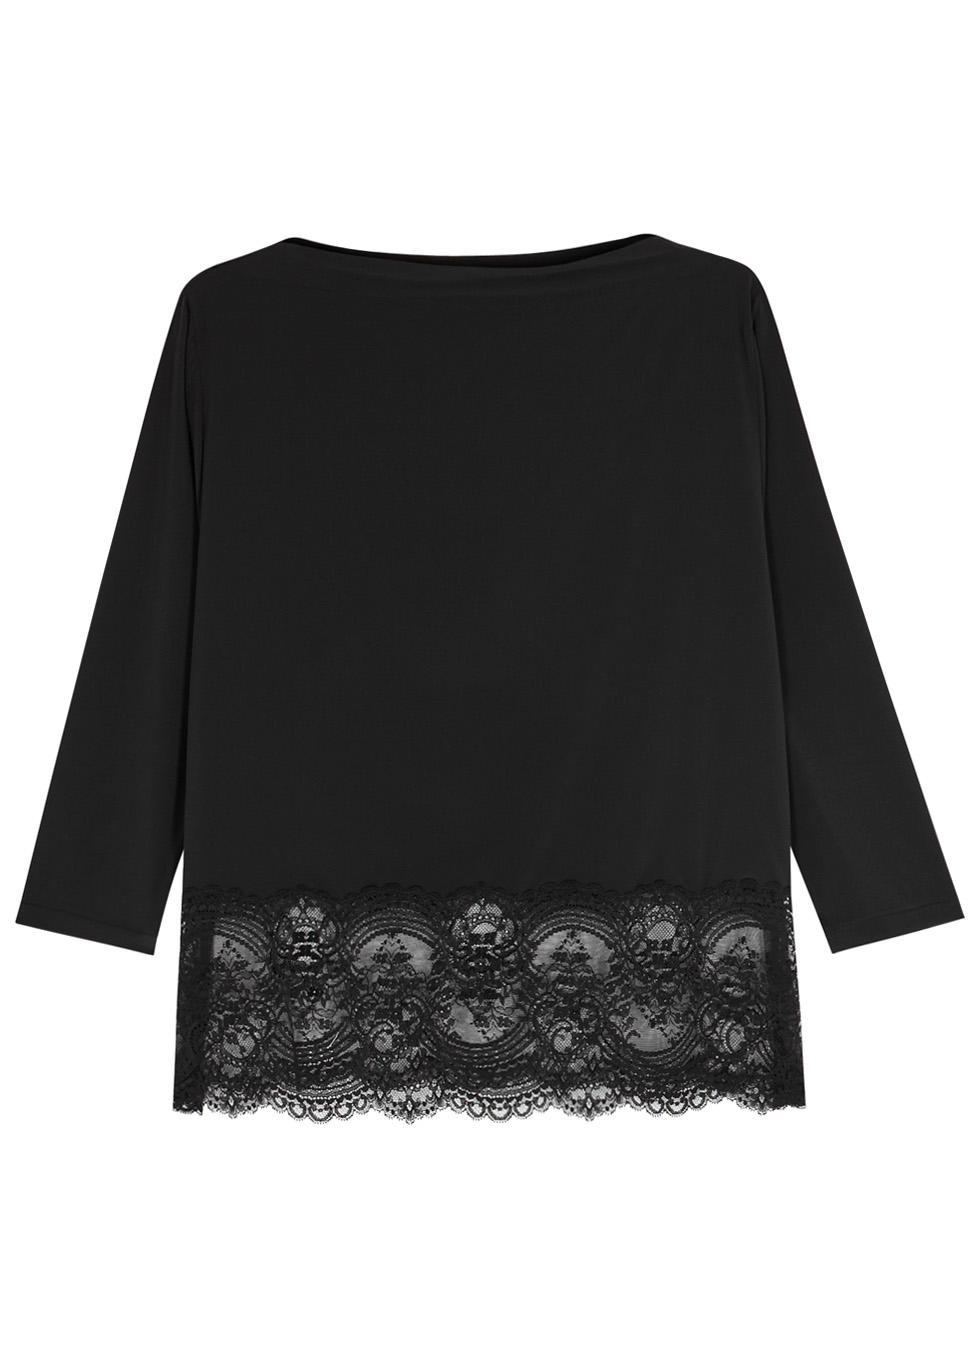 Chrystalle lace-trimmed pyjama top - Wacoal